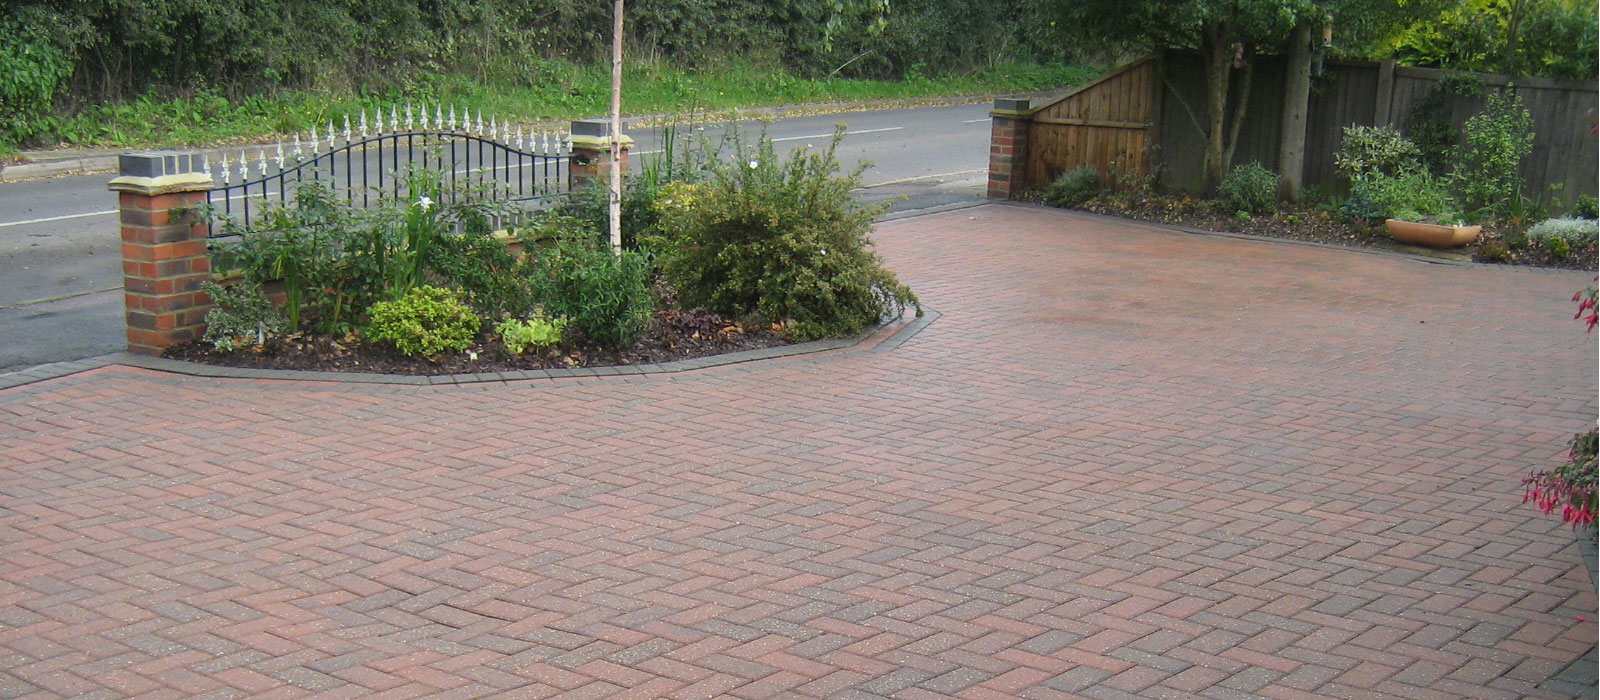 Should You Use A Pressure Washer To Clean Block Paving?